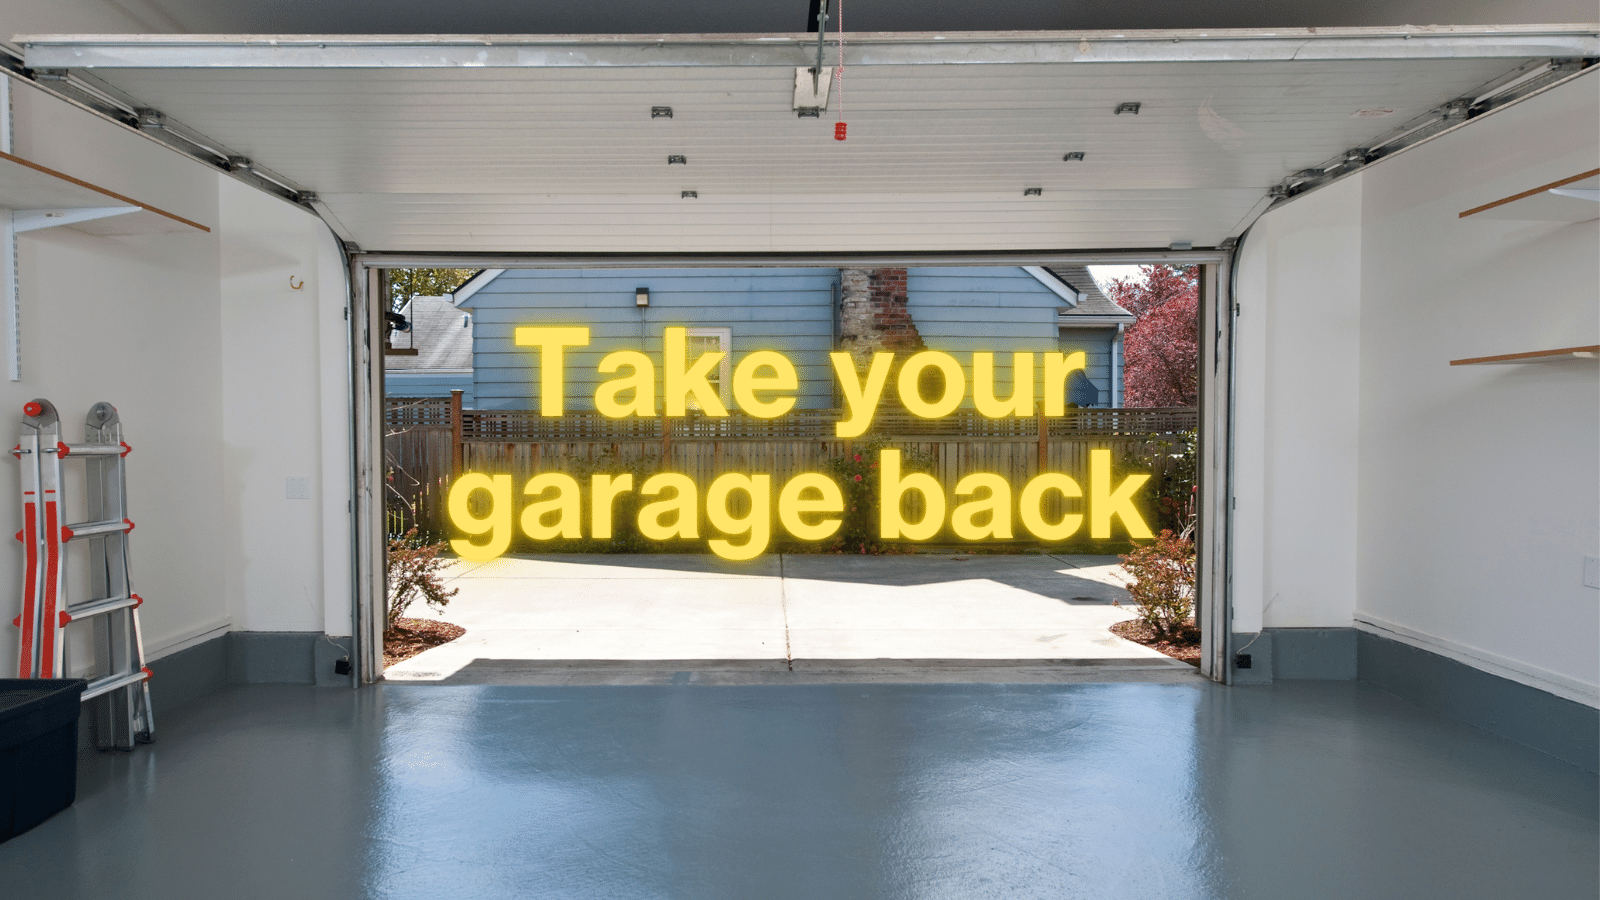 Take your garage back graphic